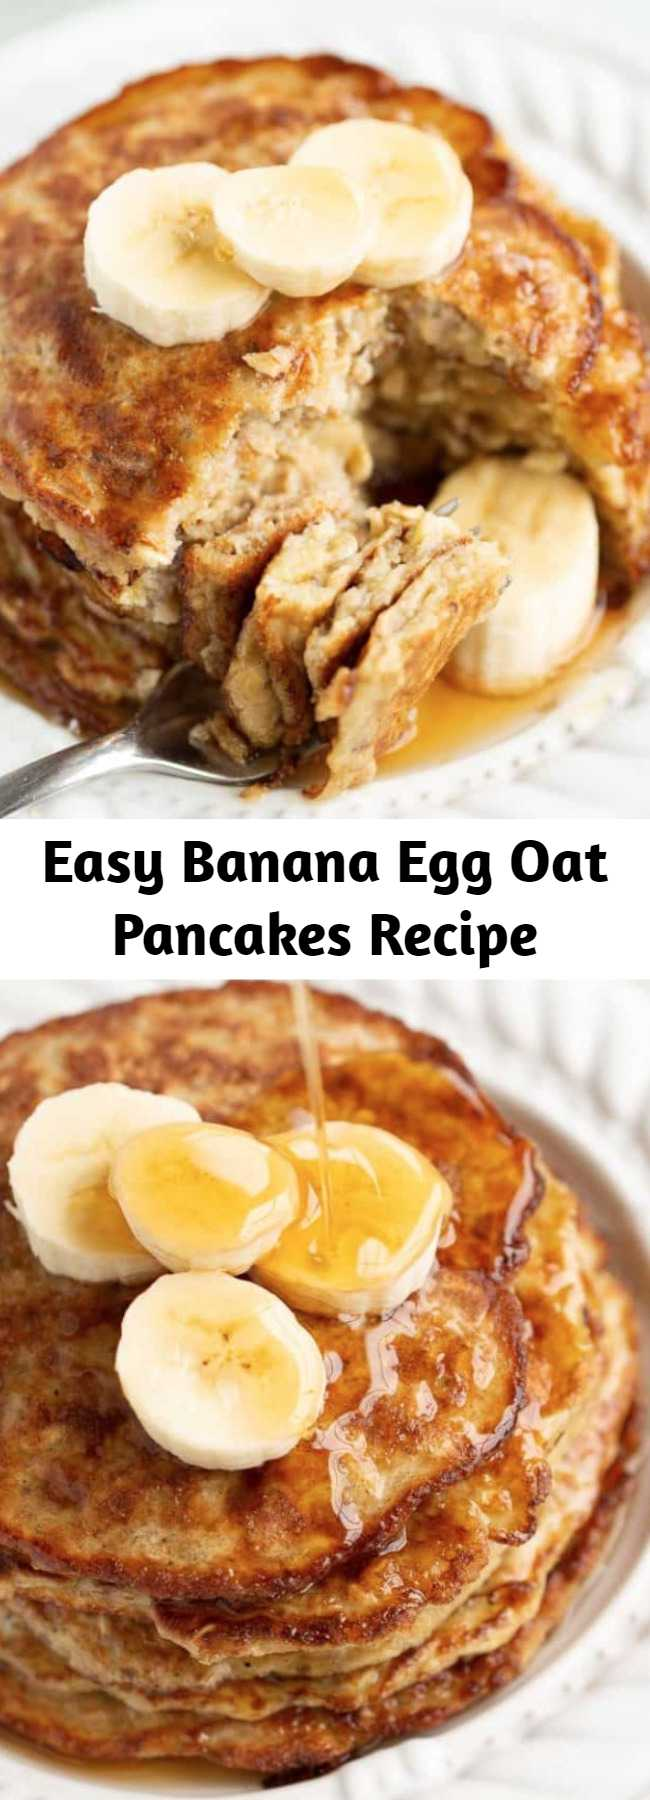 Easy Banana Egg Oat Pancakes Recipe - You only need 3-ingredients (banana, eggs and oats) to make these healthy, delicious pancakes. EASY, kid-friendly and perfect for using up bananas. Add a spoonful of peanut butter and a pinch of cinnamon to take these to the next level! #bananapancakes #bananaeggpancakes #healthypancakes #glutenfreepancakes